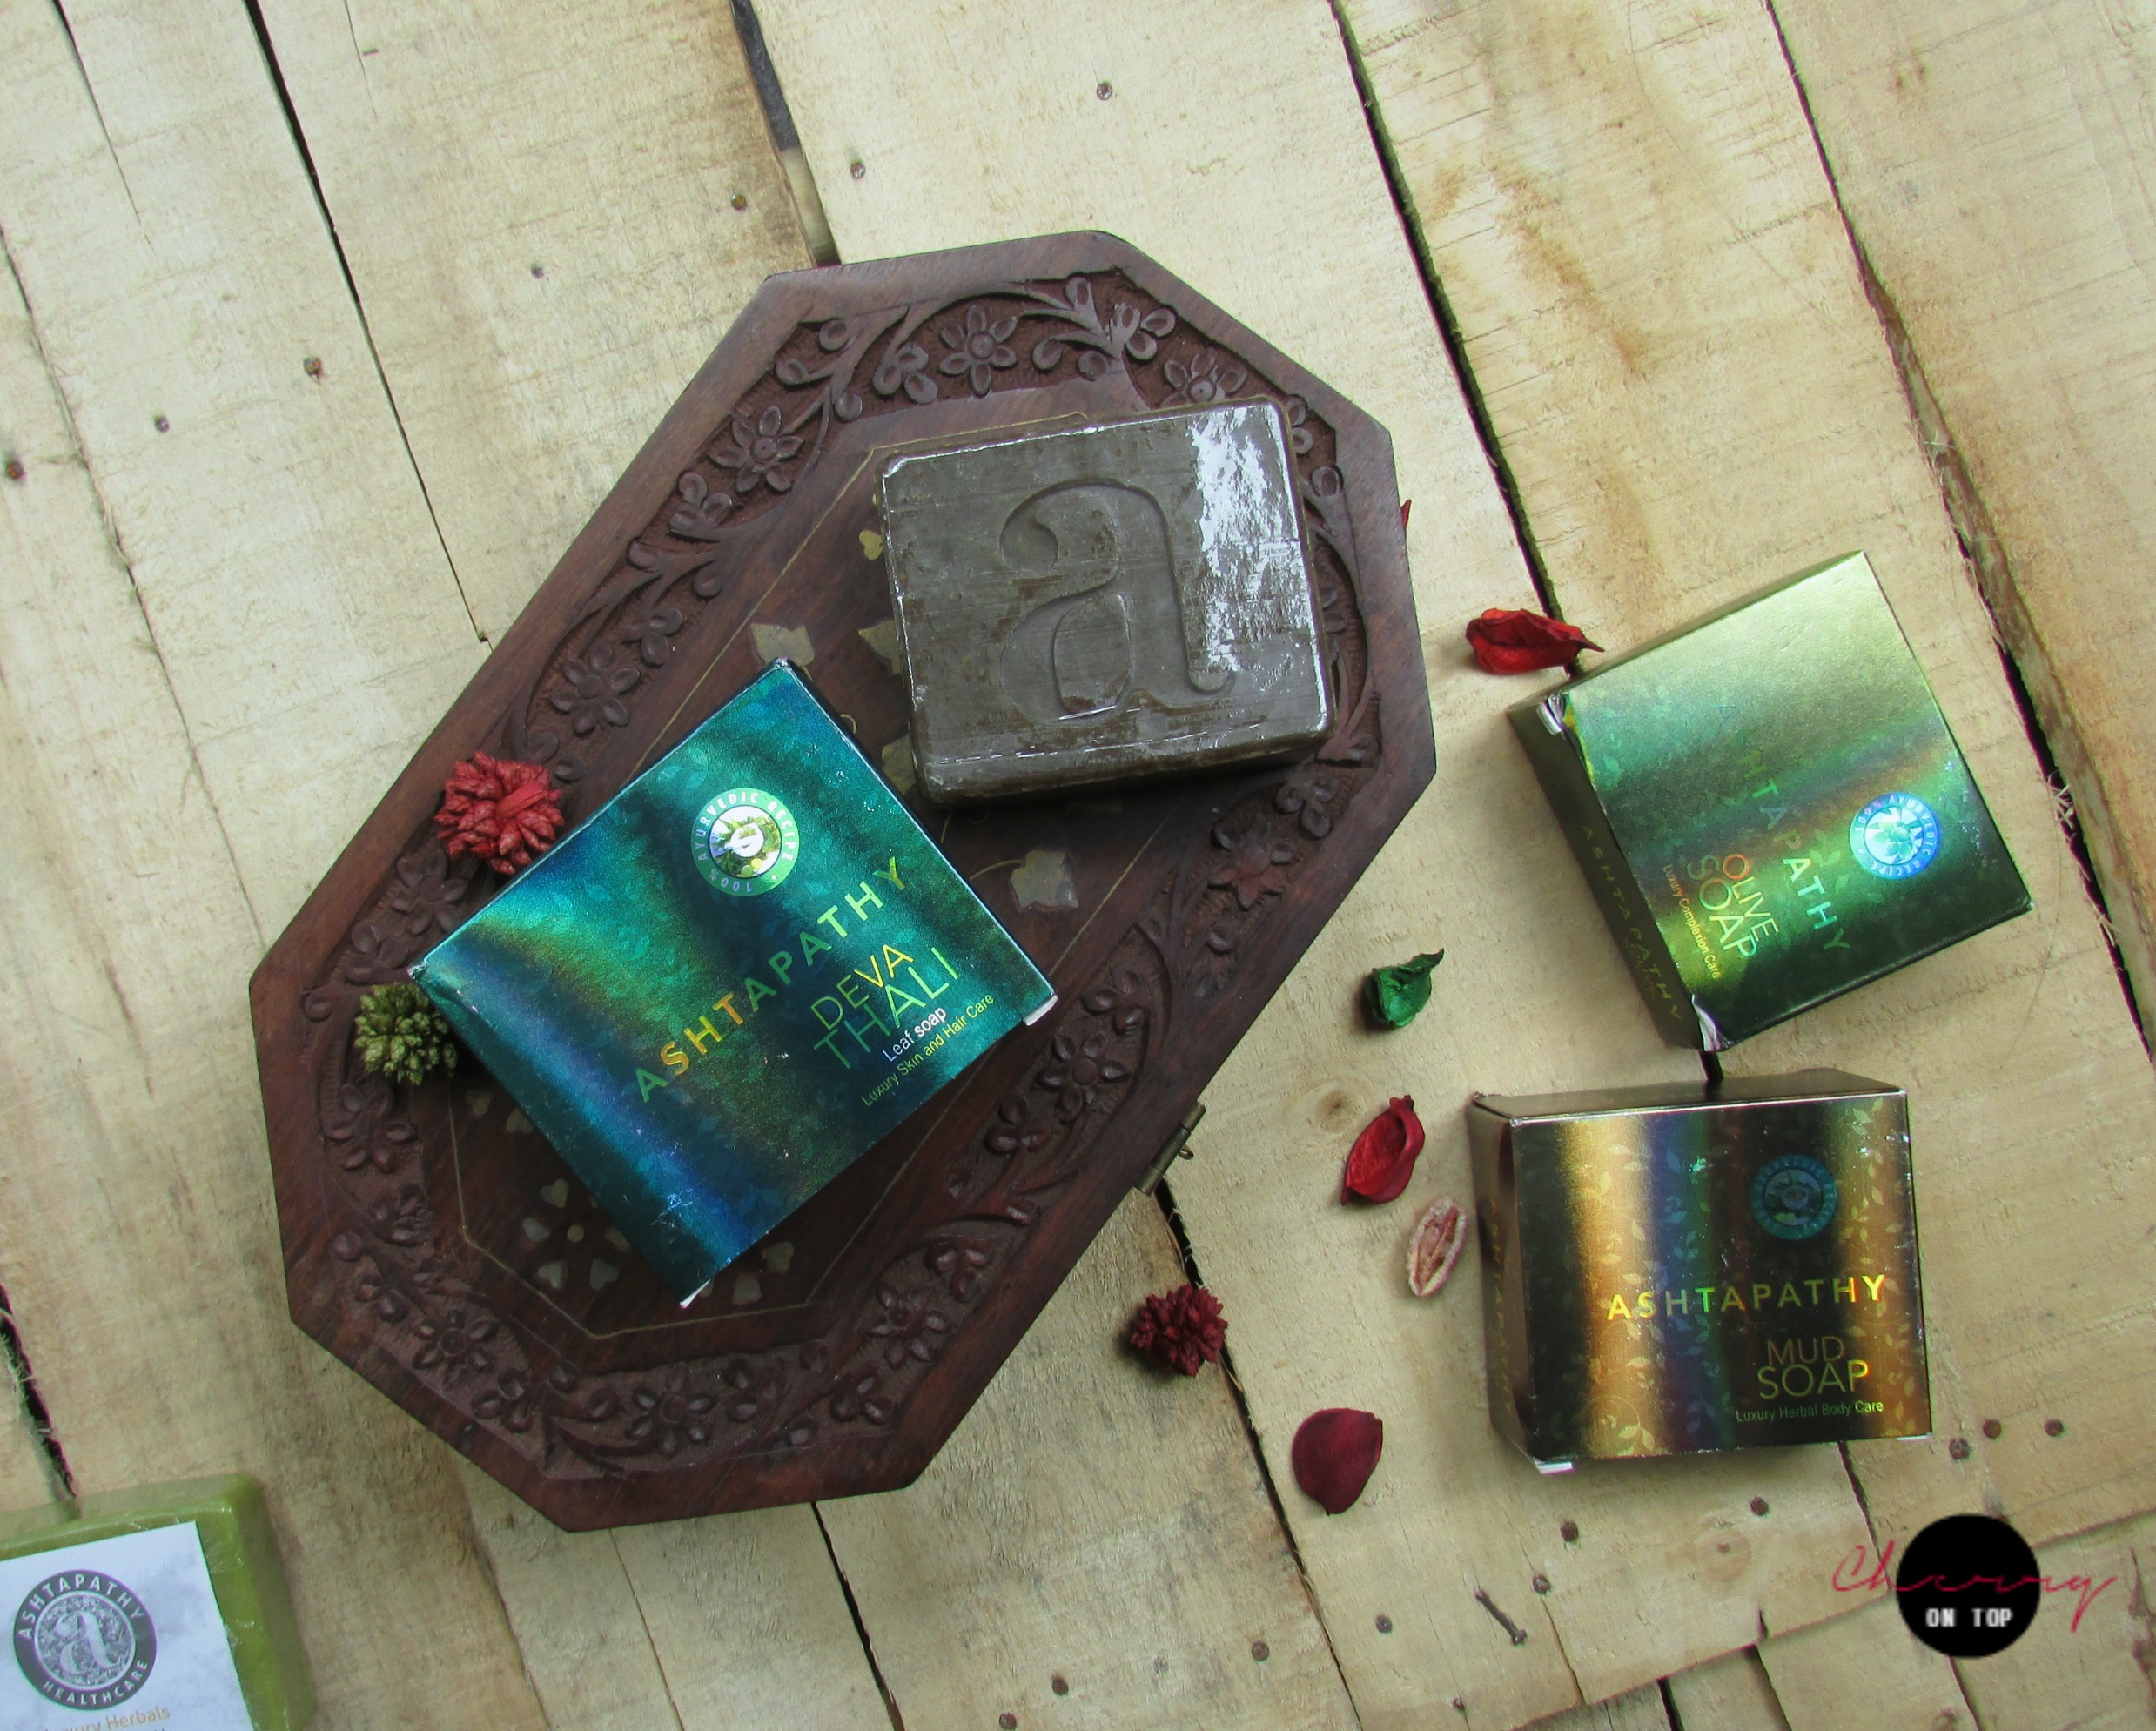 Ashtapathy Herbals Deva Thali Soap Review